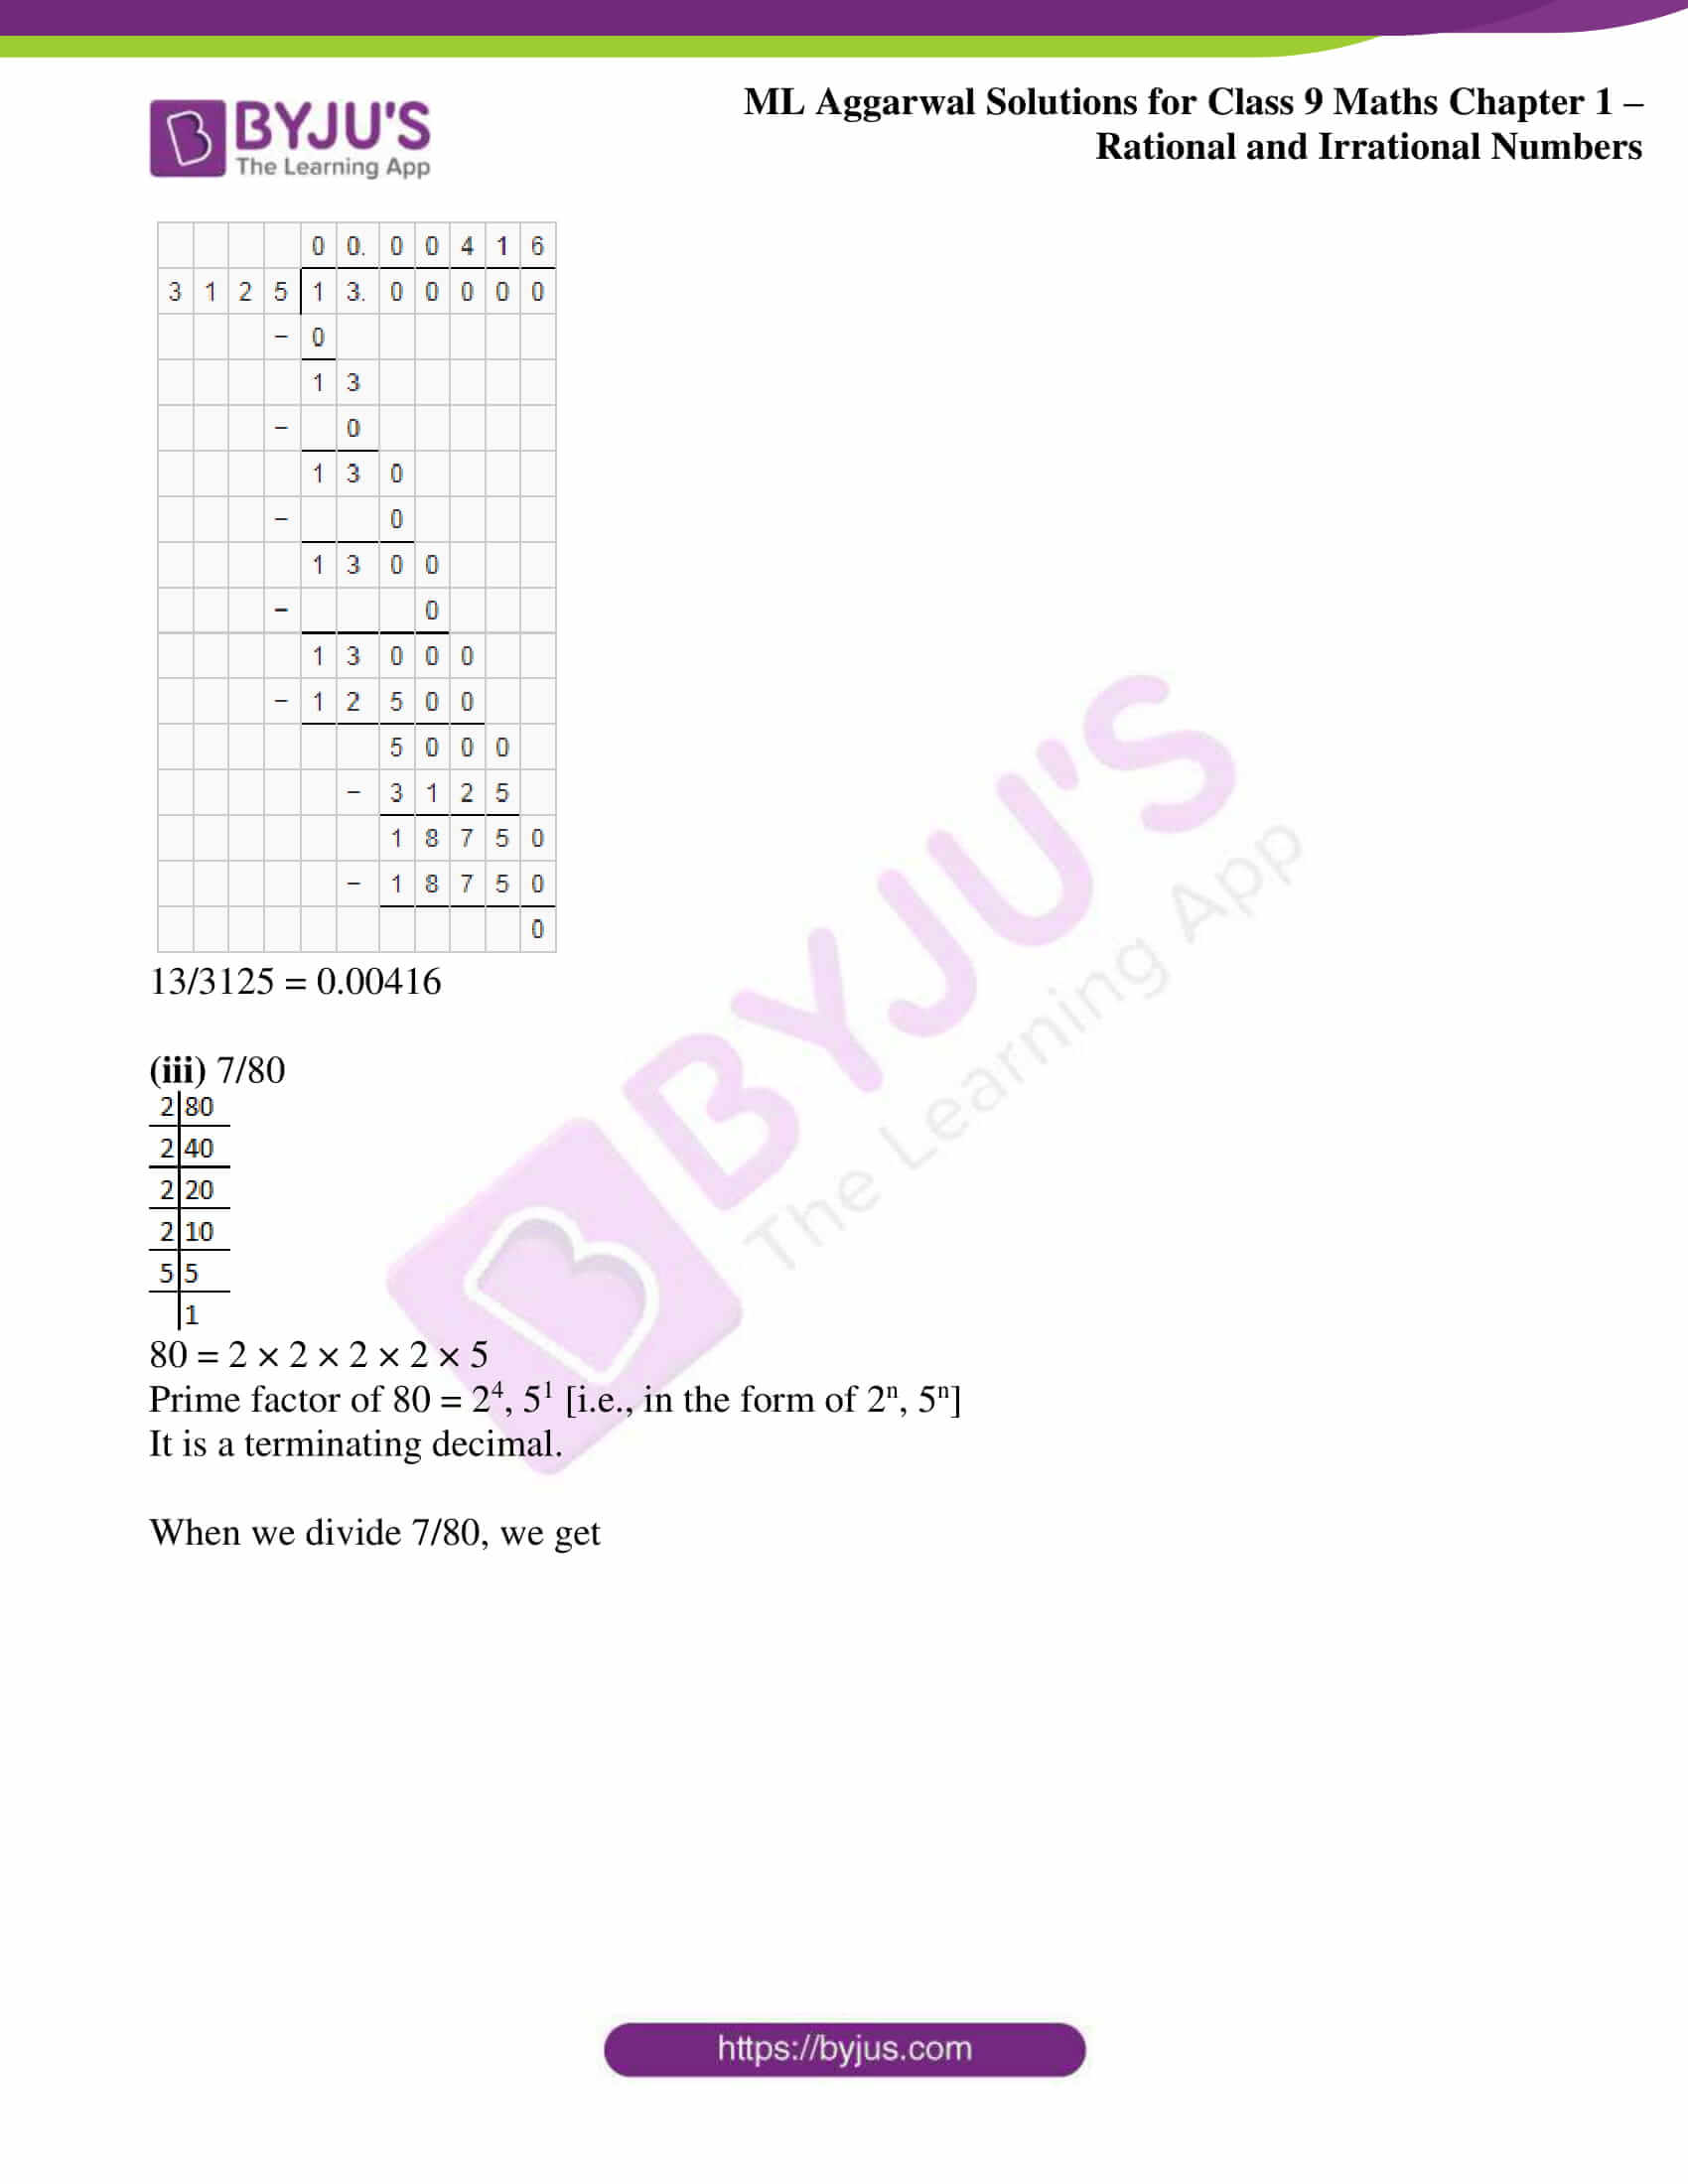 ml aggarwal solutions for class 9 maths chapter 1 24